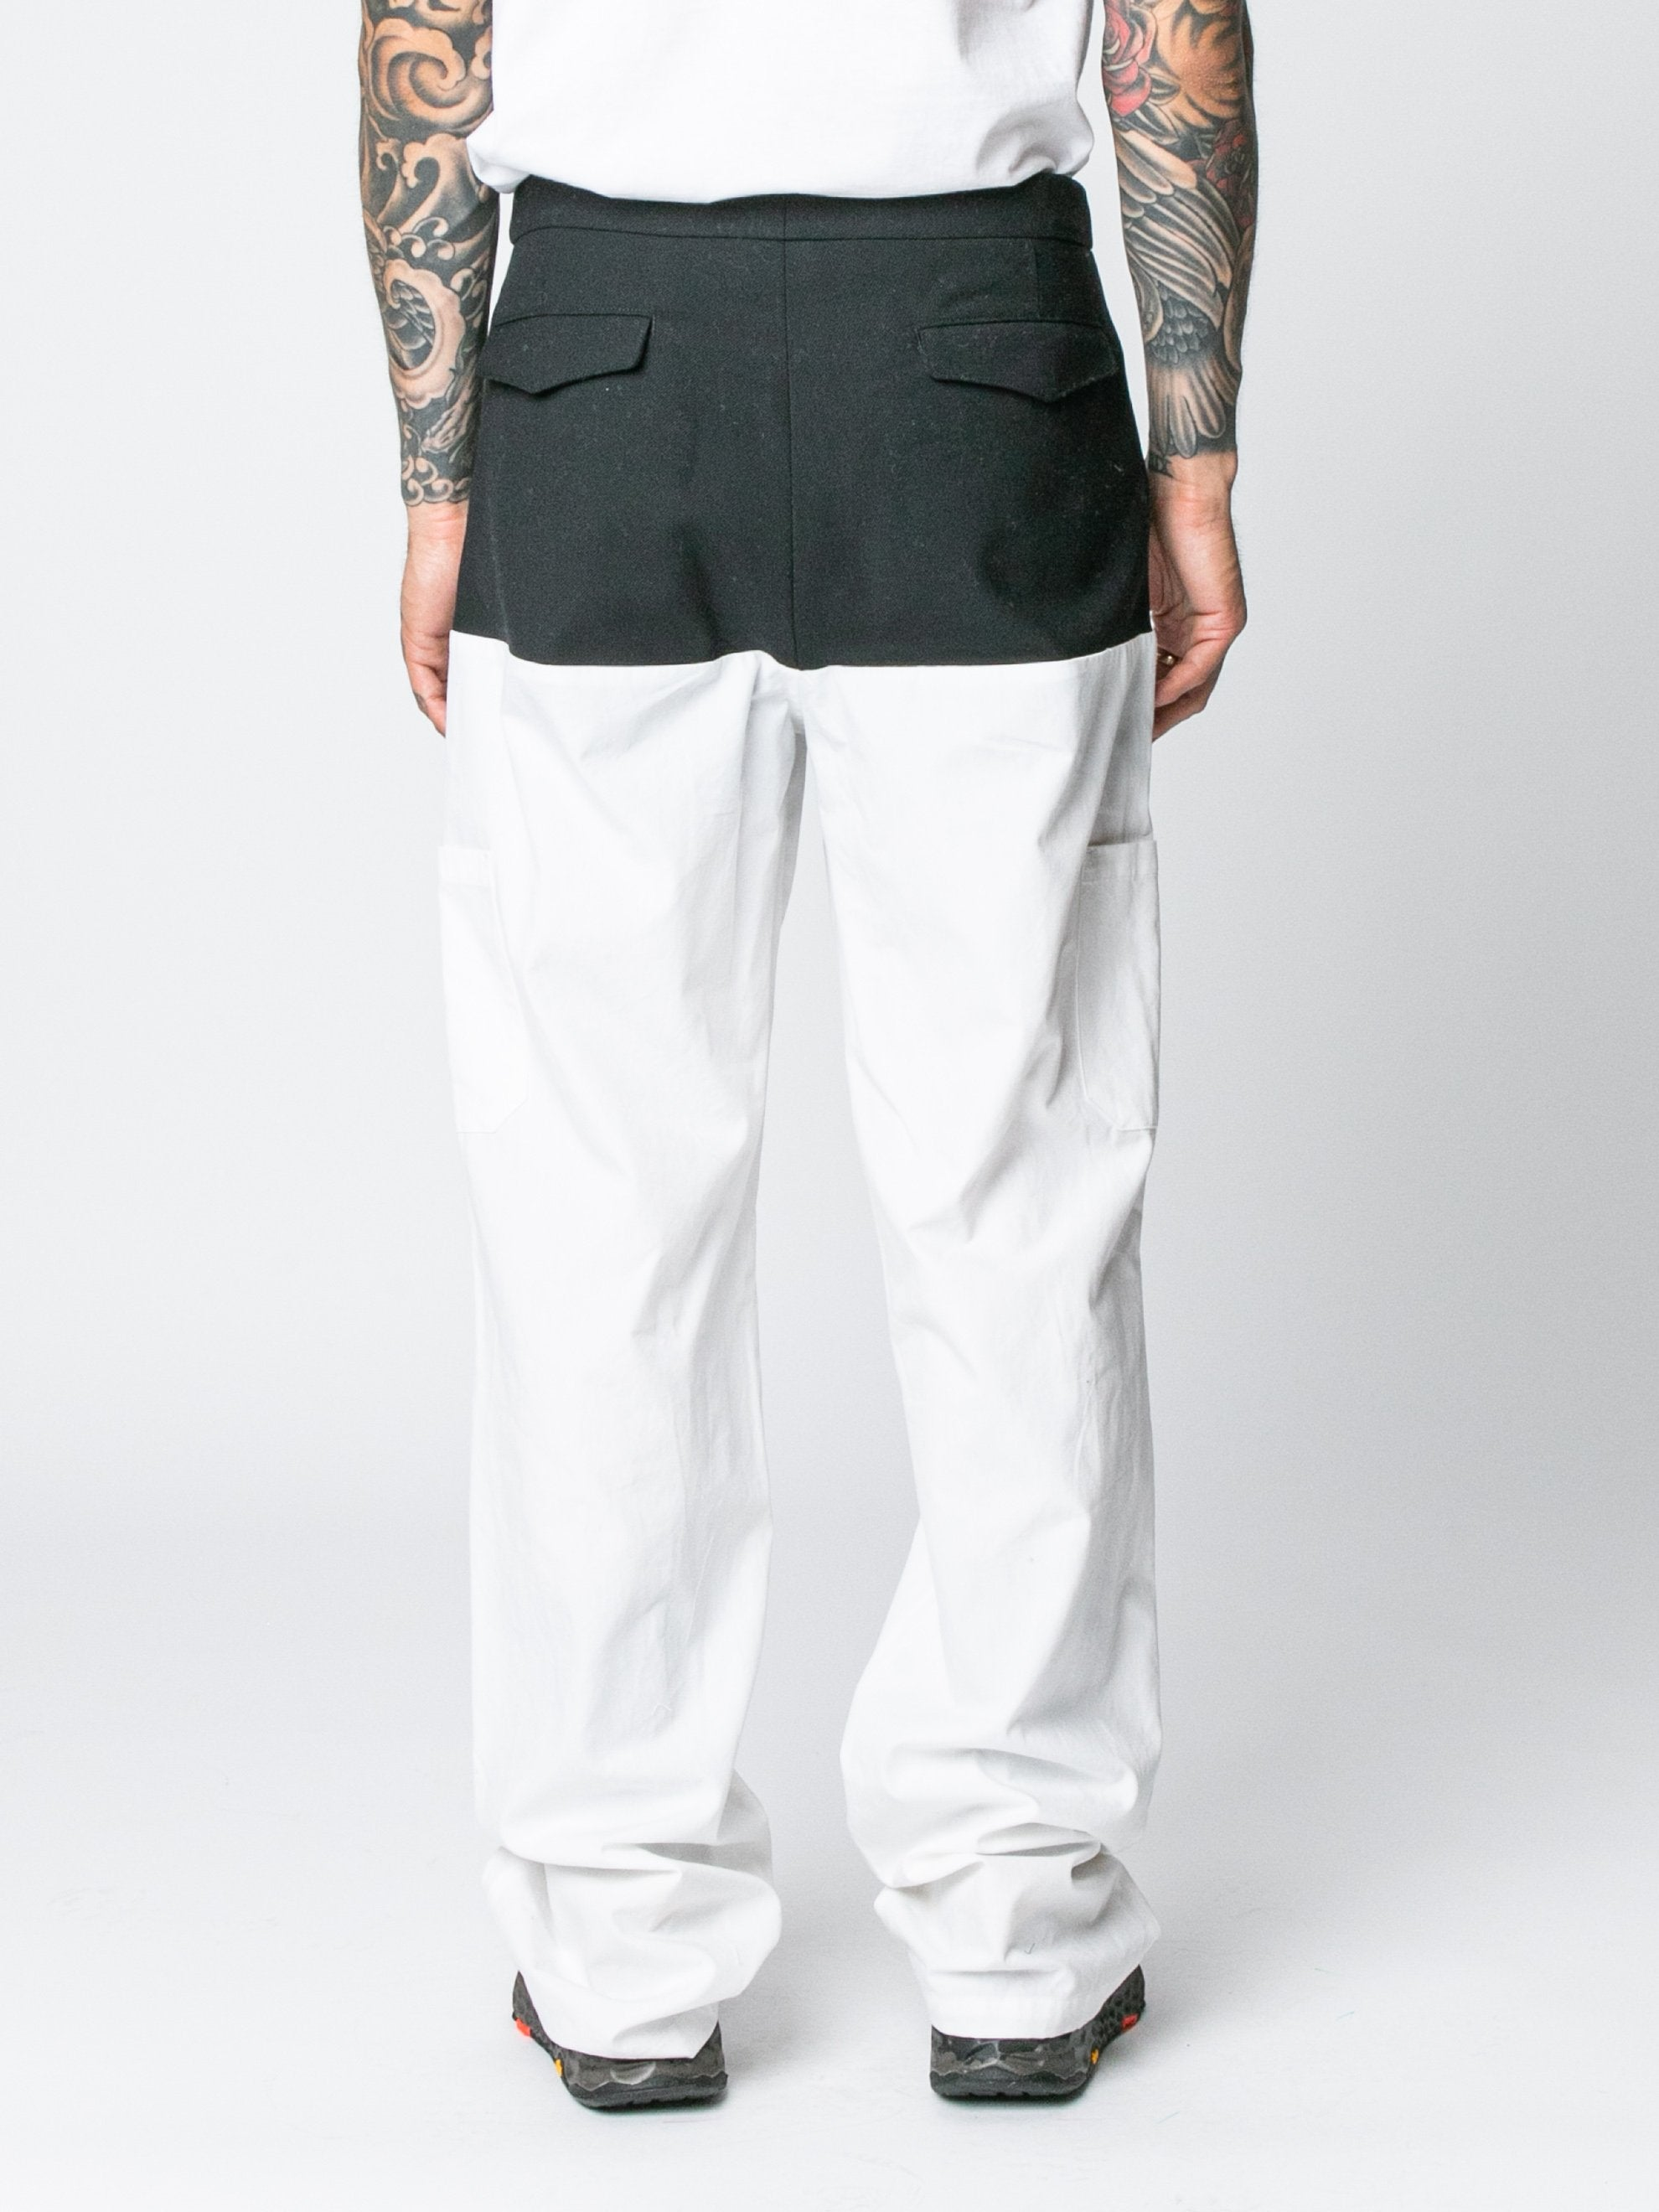 White / Navy Pants With Horizontal Cut Pockets & Suspenders 5